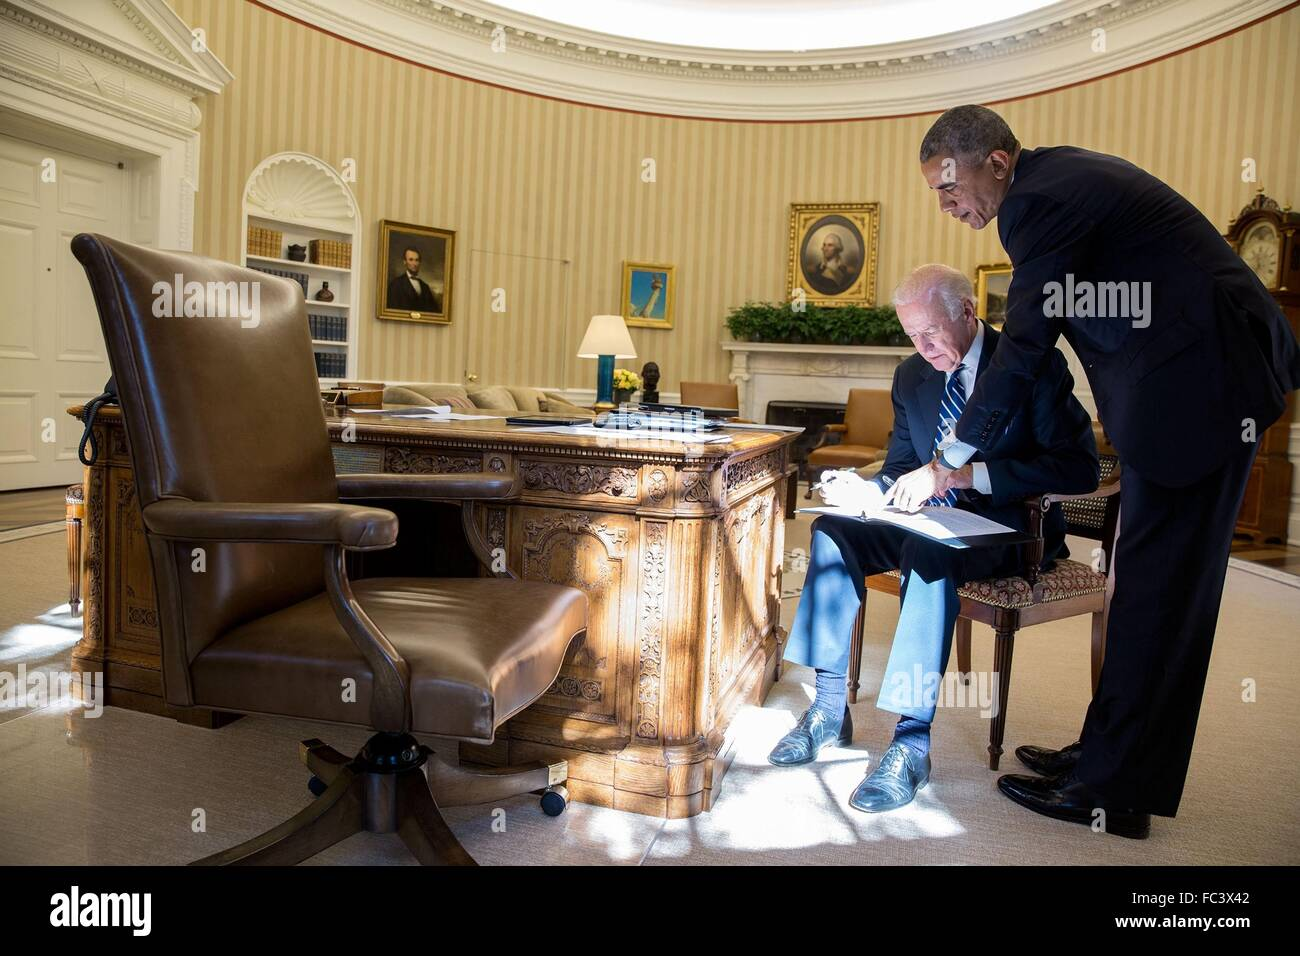 oval office chair. U.S President Barack Obama Reviews A Statement With Vice Joe Biden In The Oval Office Of White House October 21, 2015 Washington, DC. Chair E